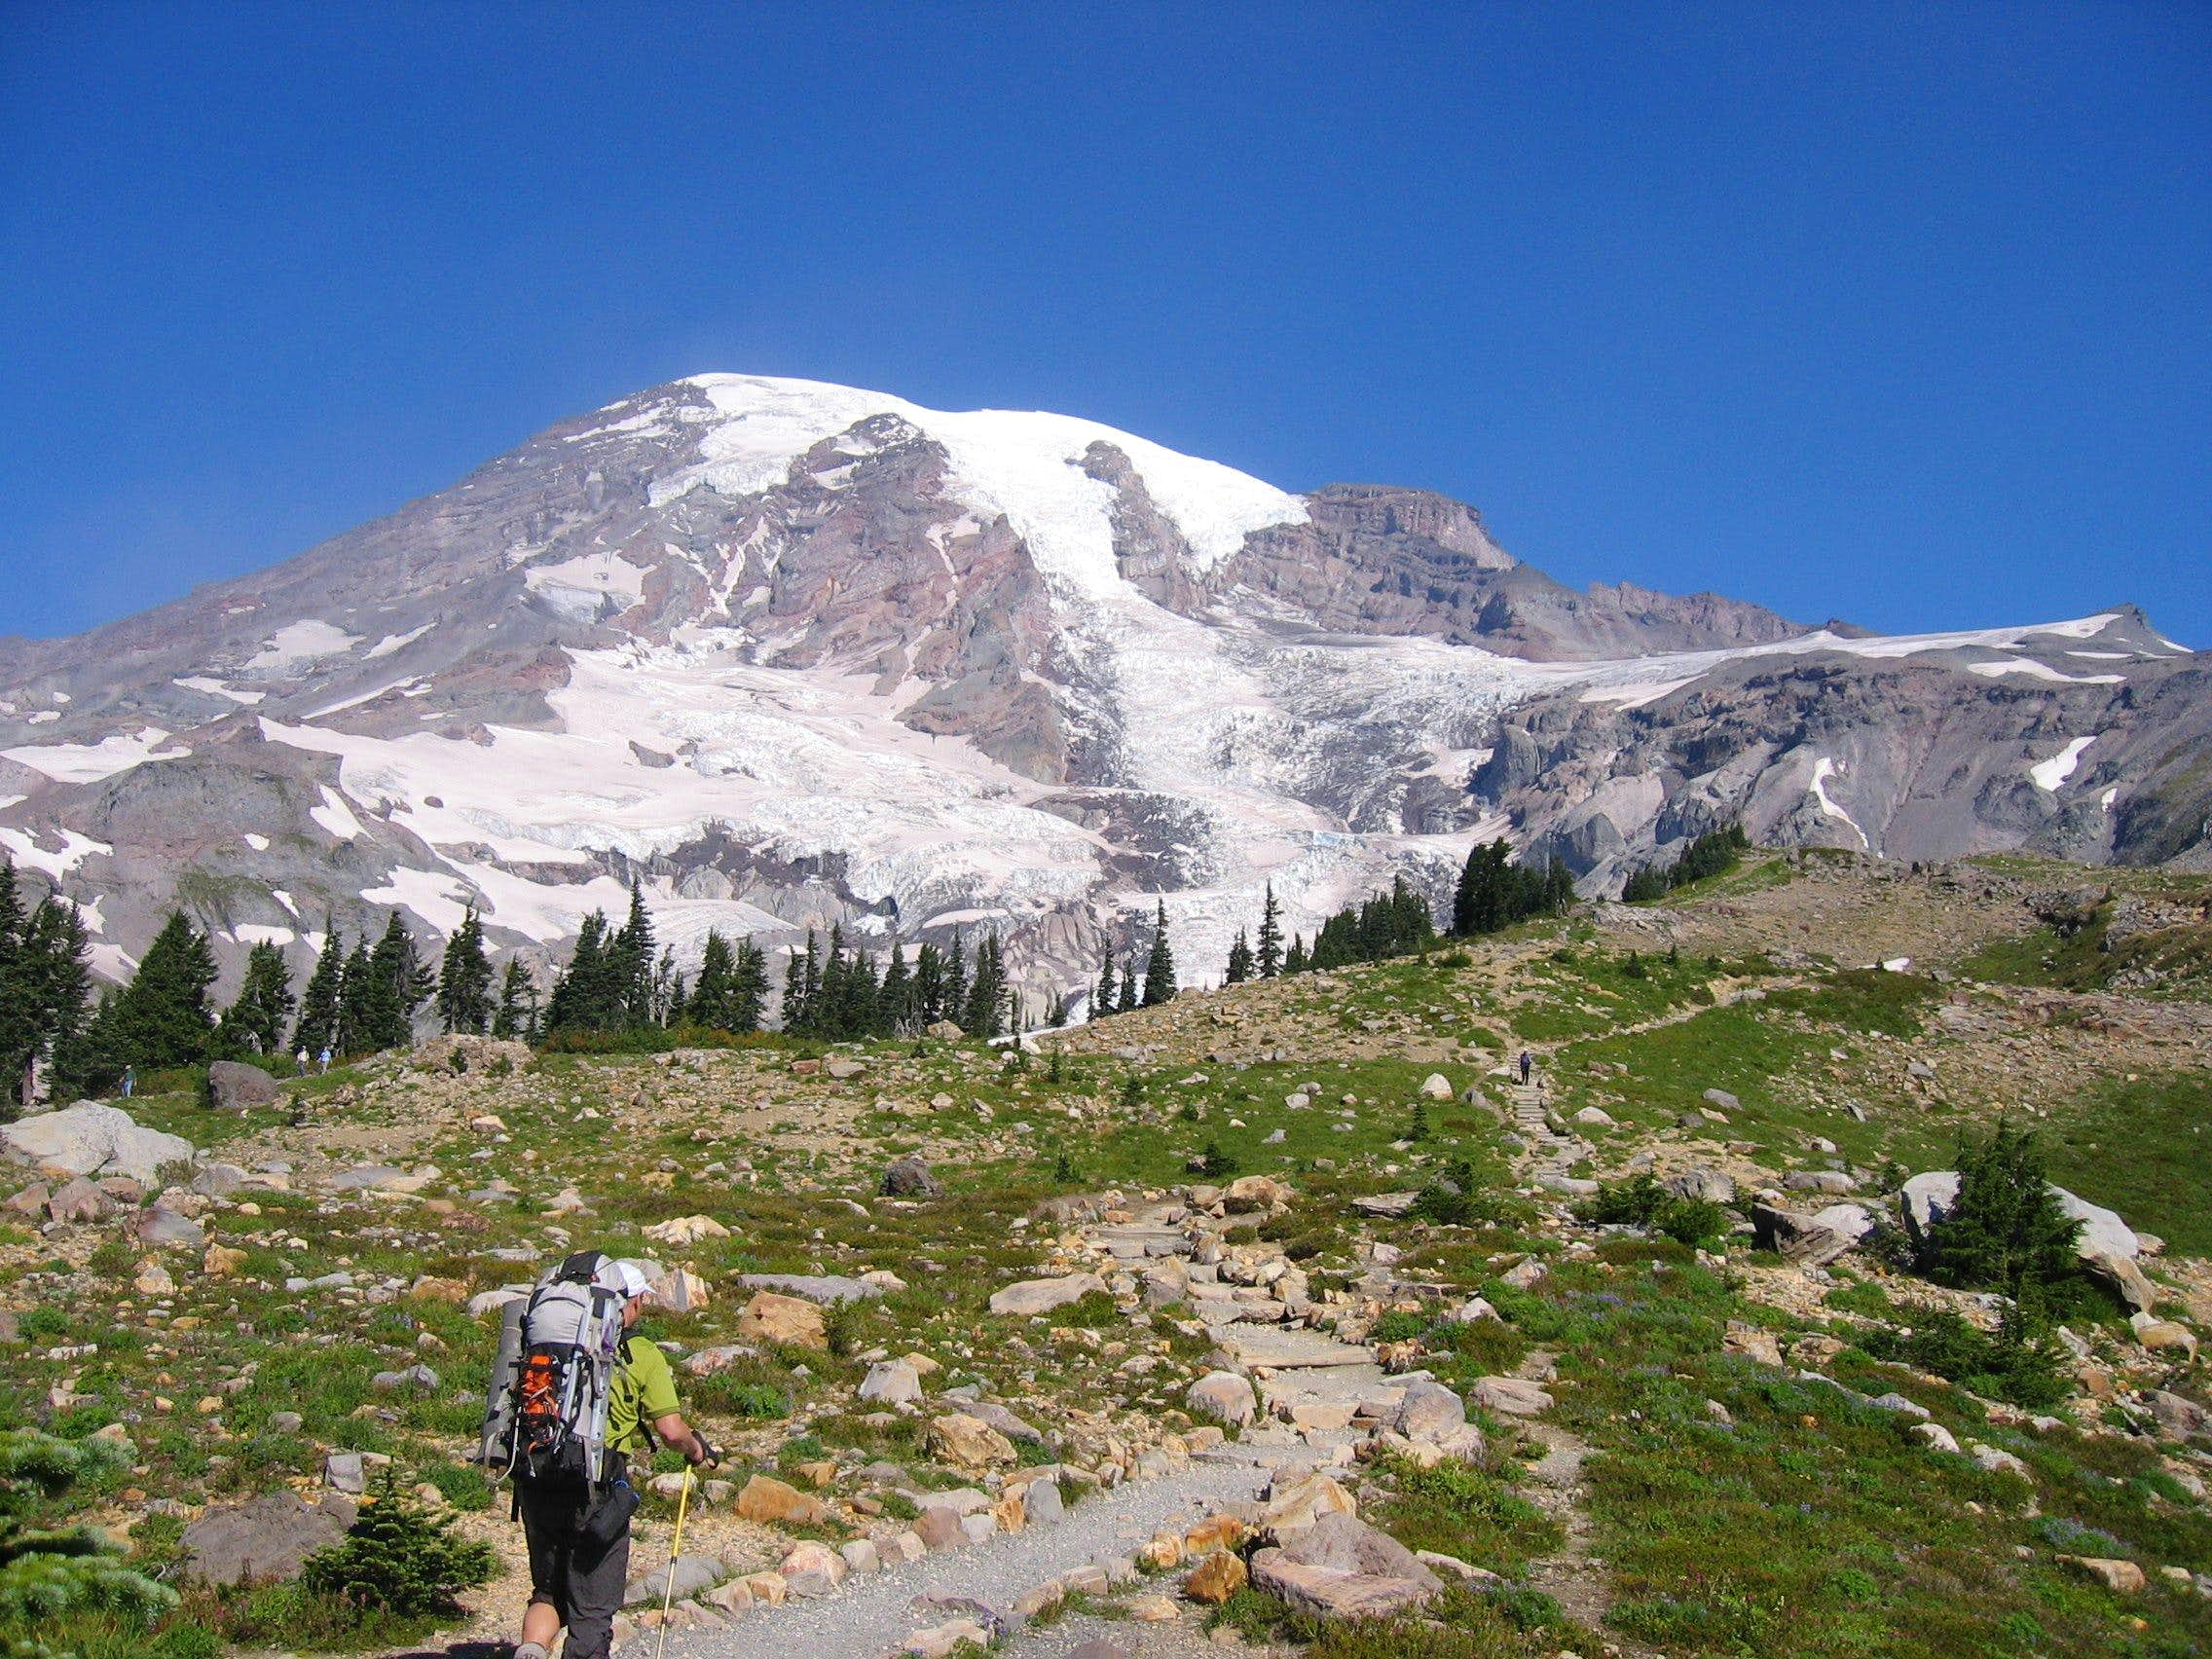 So you want to climb Mt Rainier.